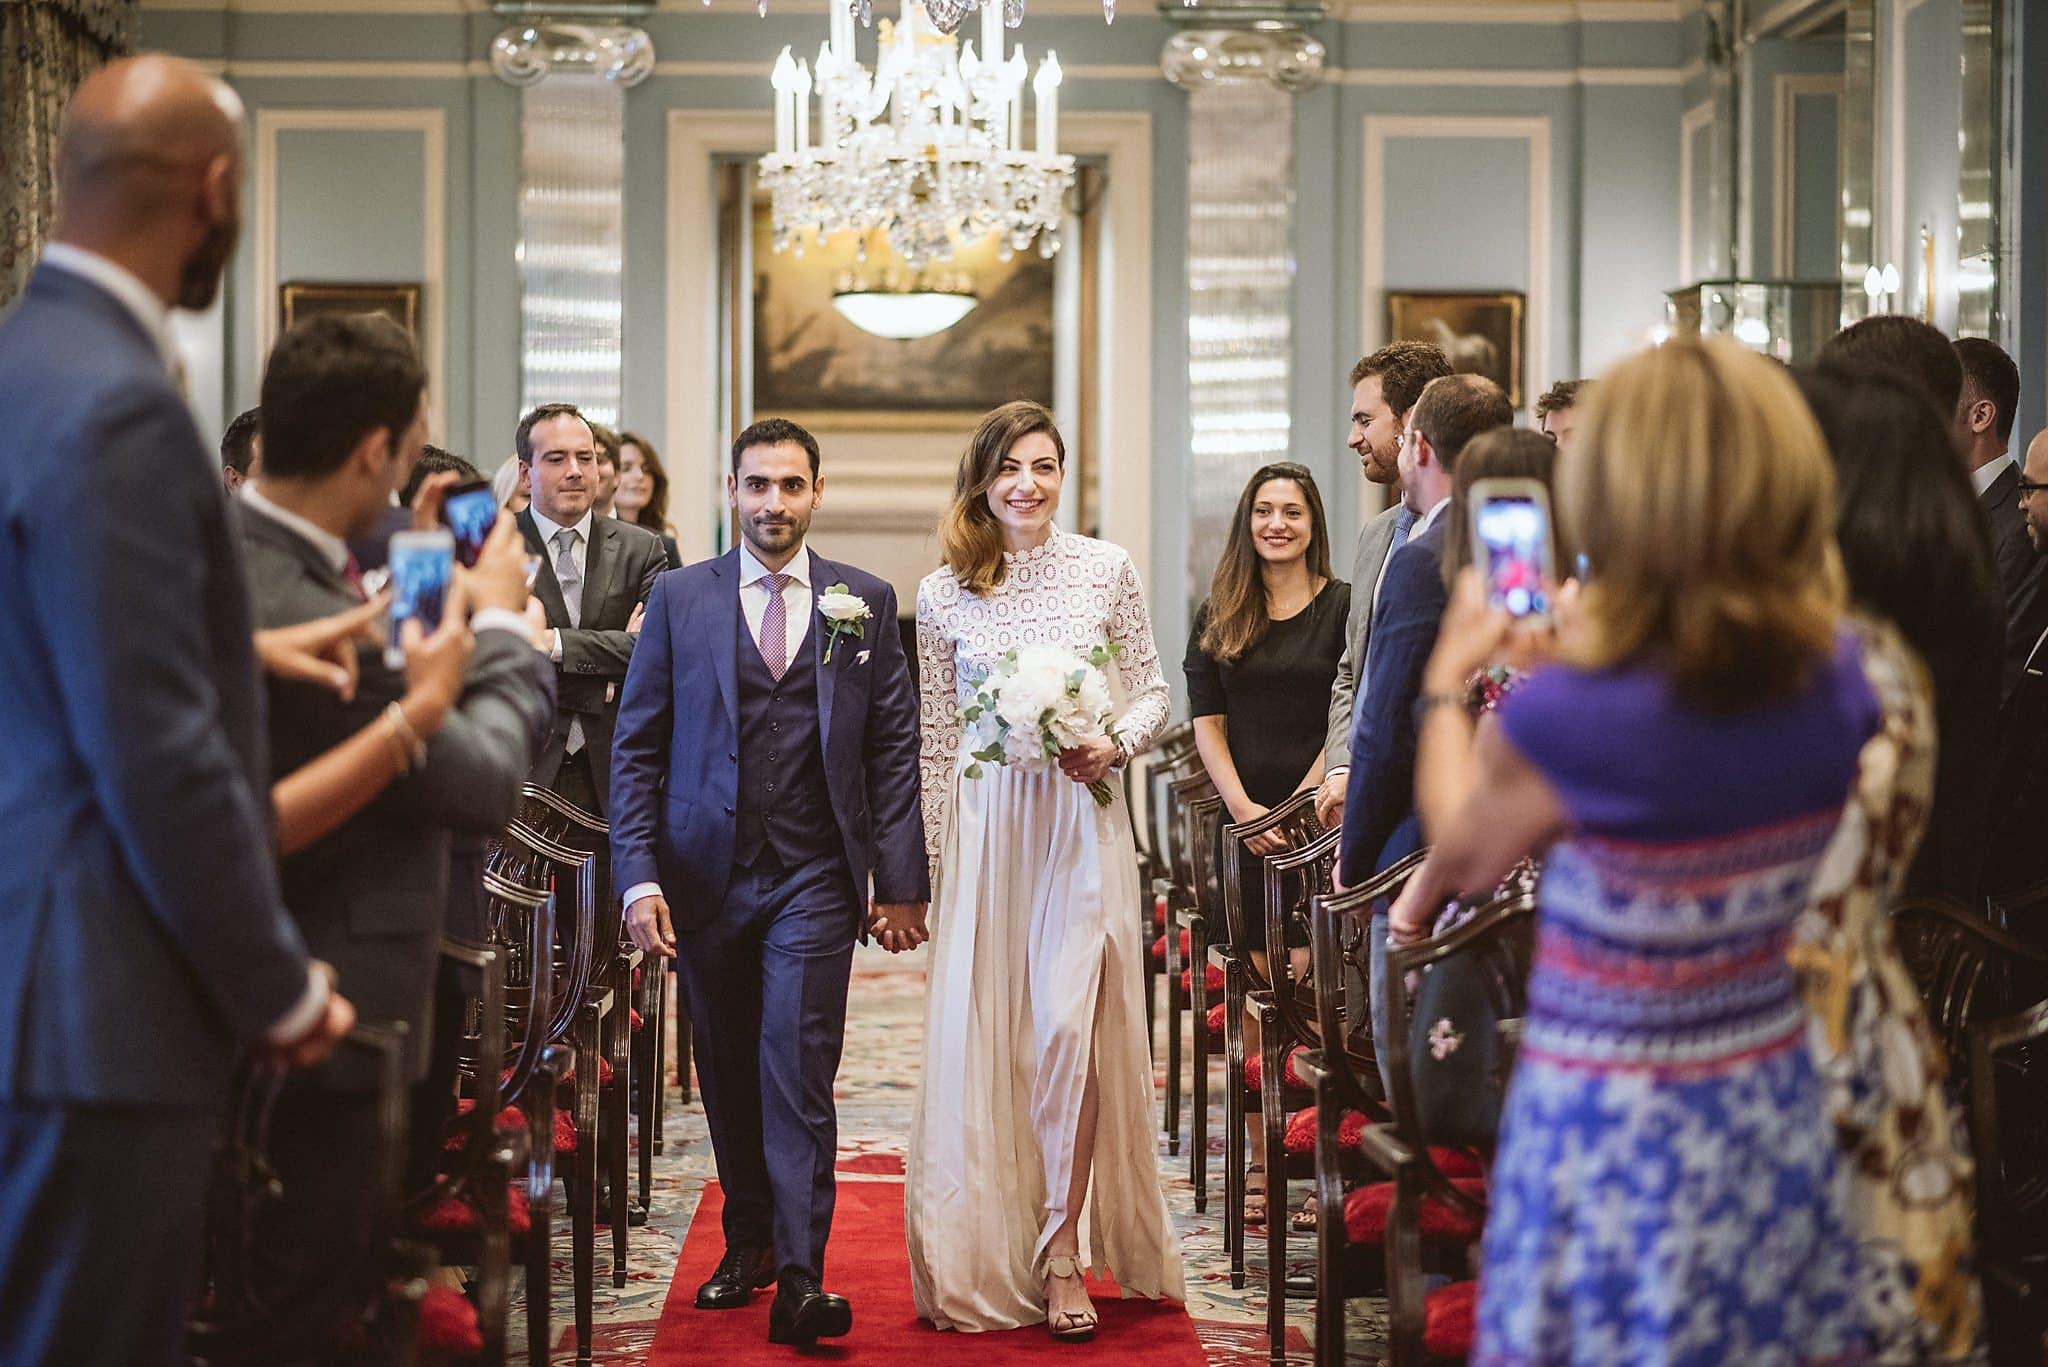 Bride and groom walk down the aisle at their Lanesborough wedding